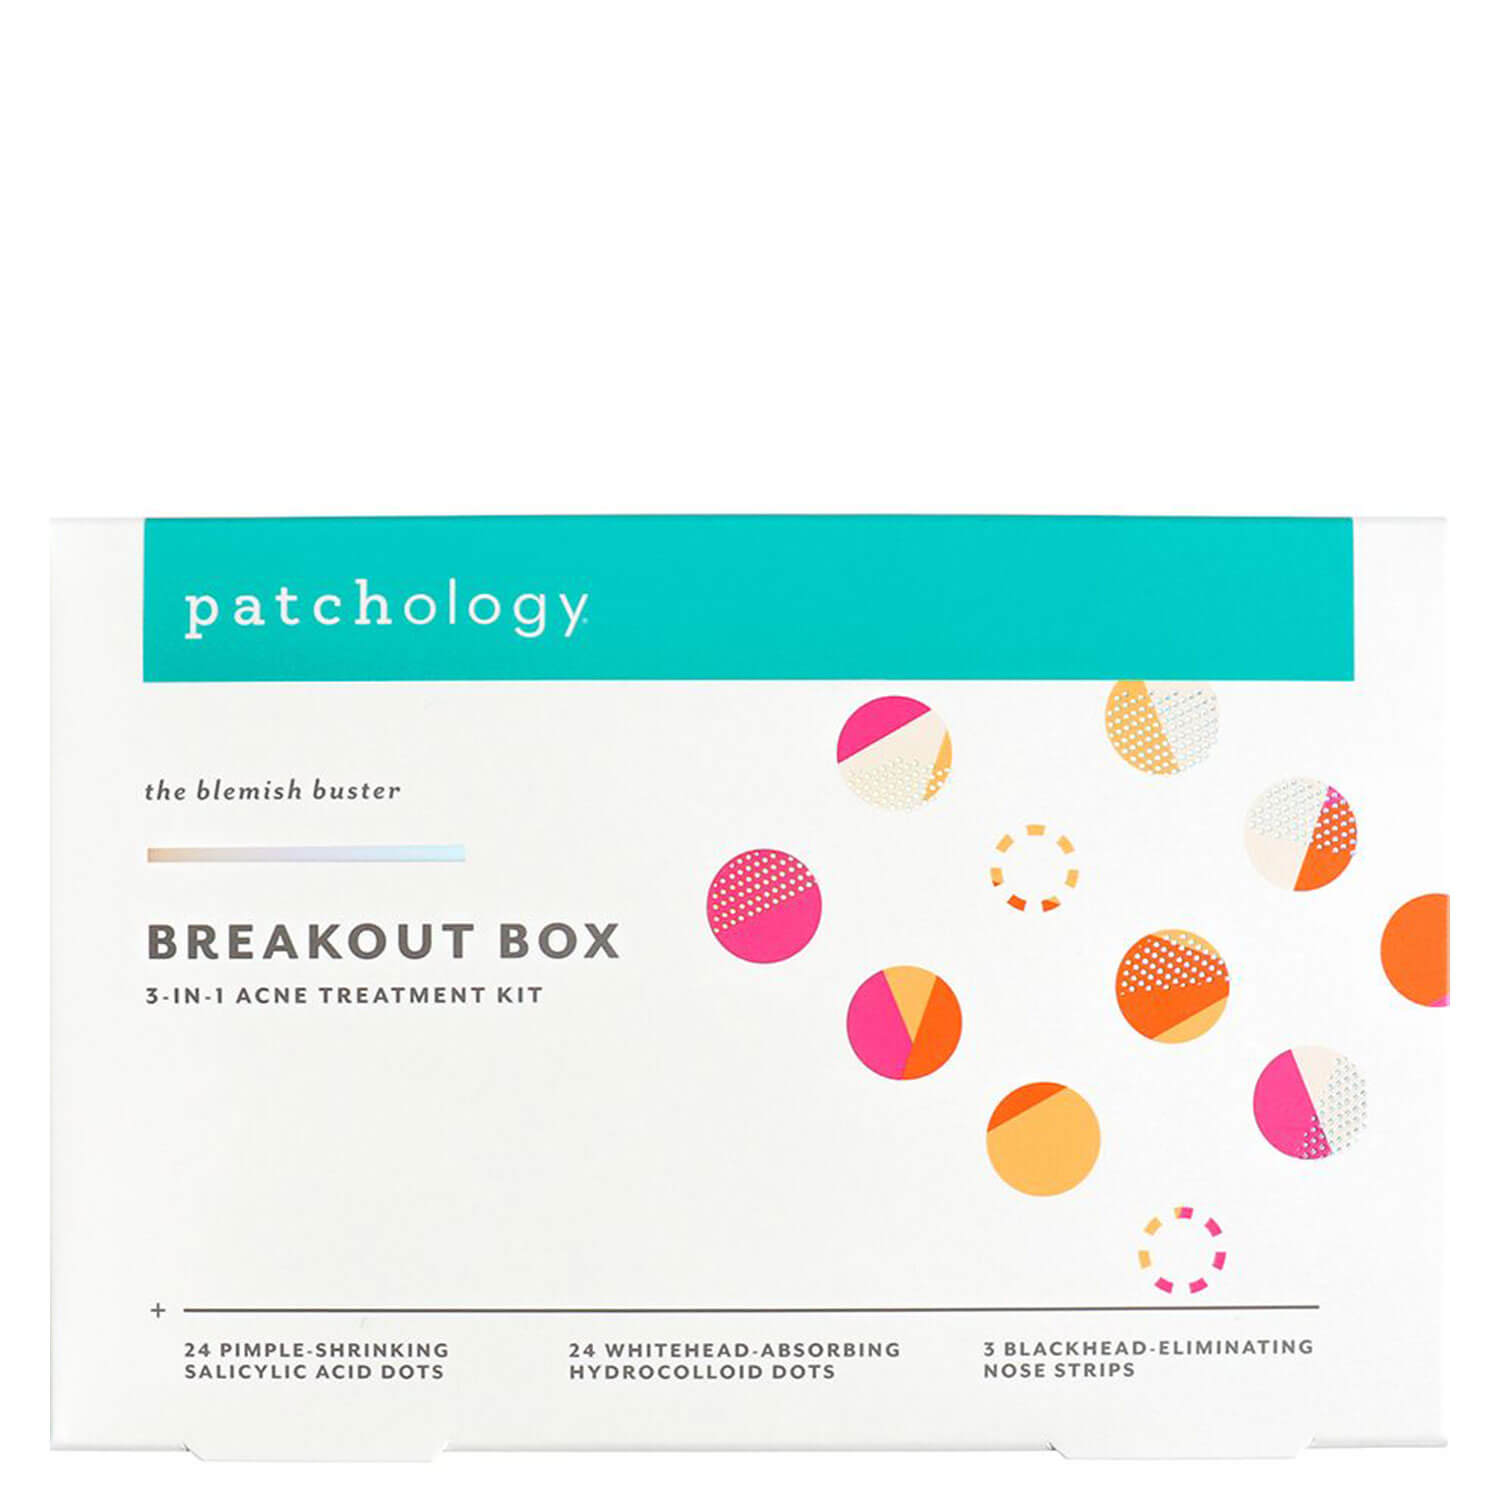 patchology Kits - Breakout Box 3-In-1 Acne Treatment Kit